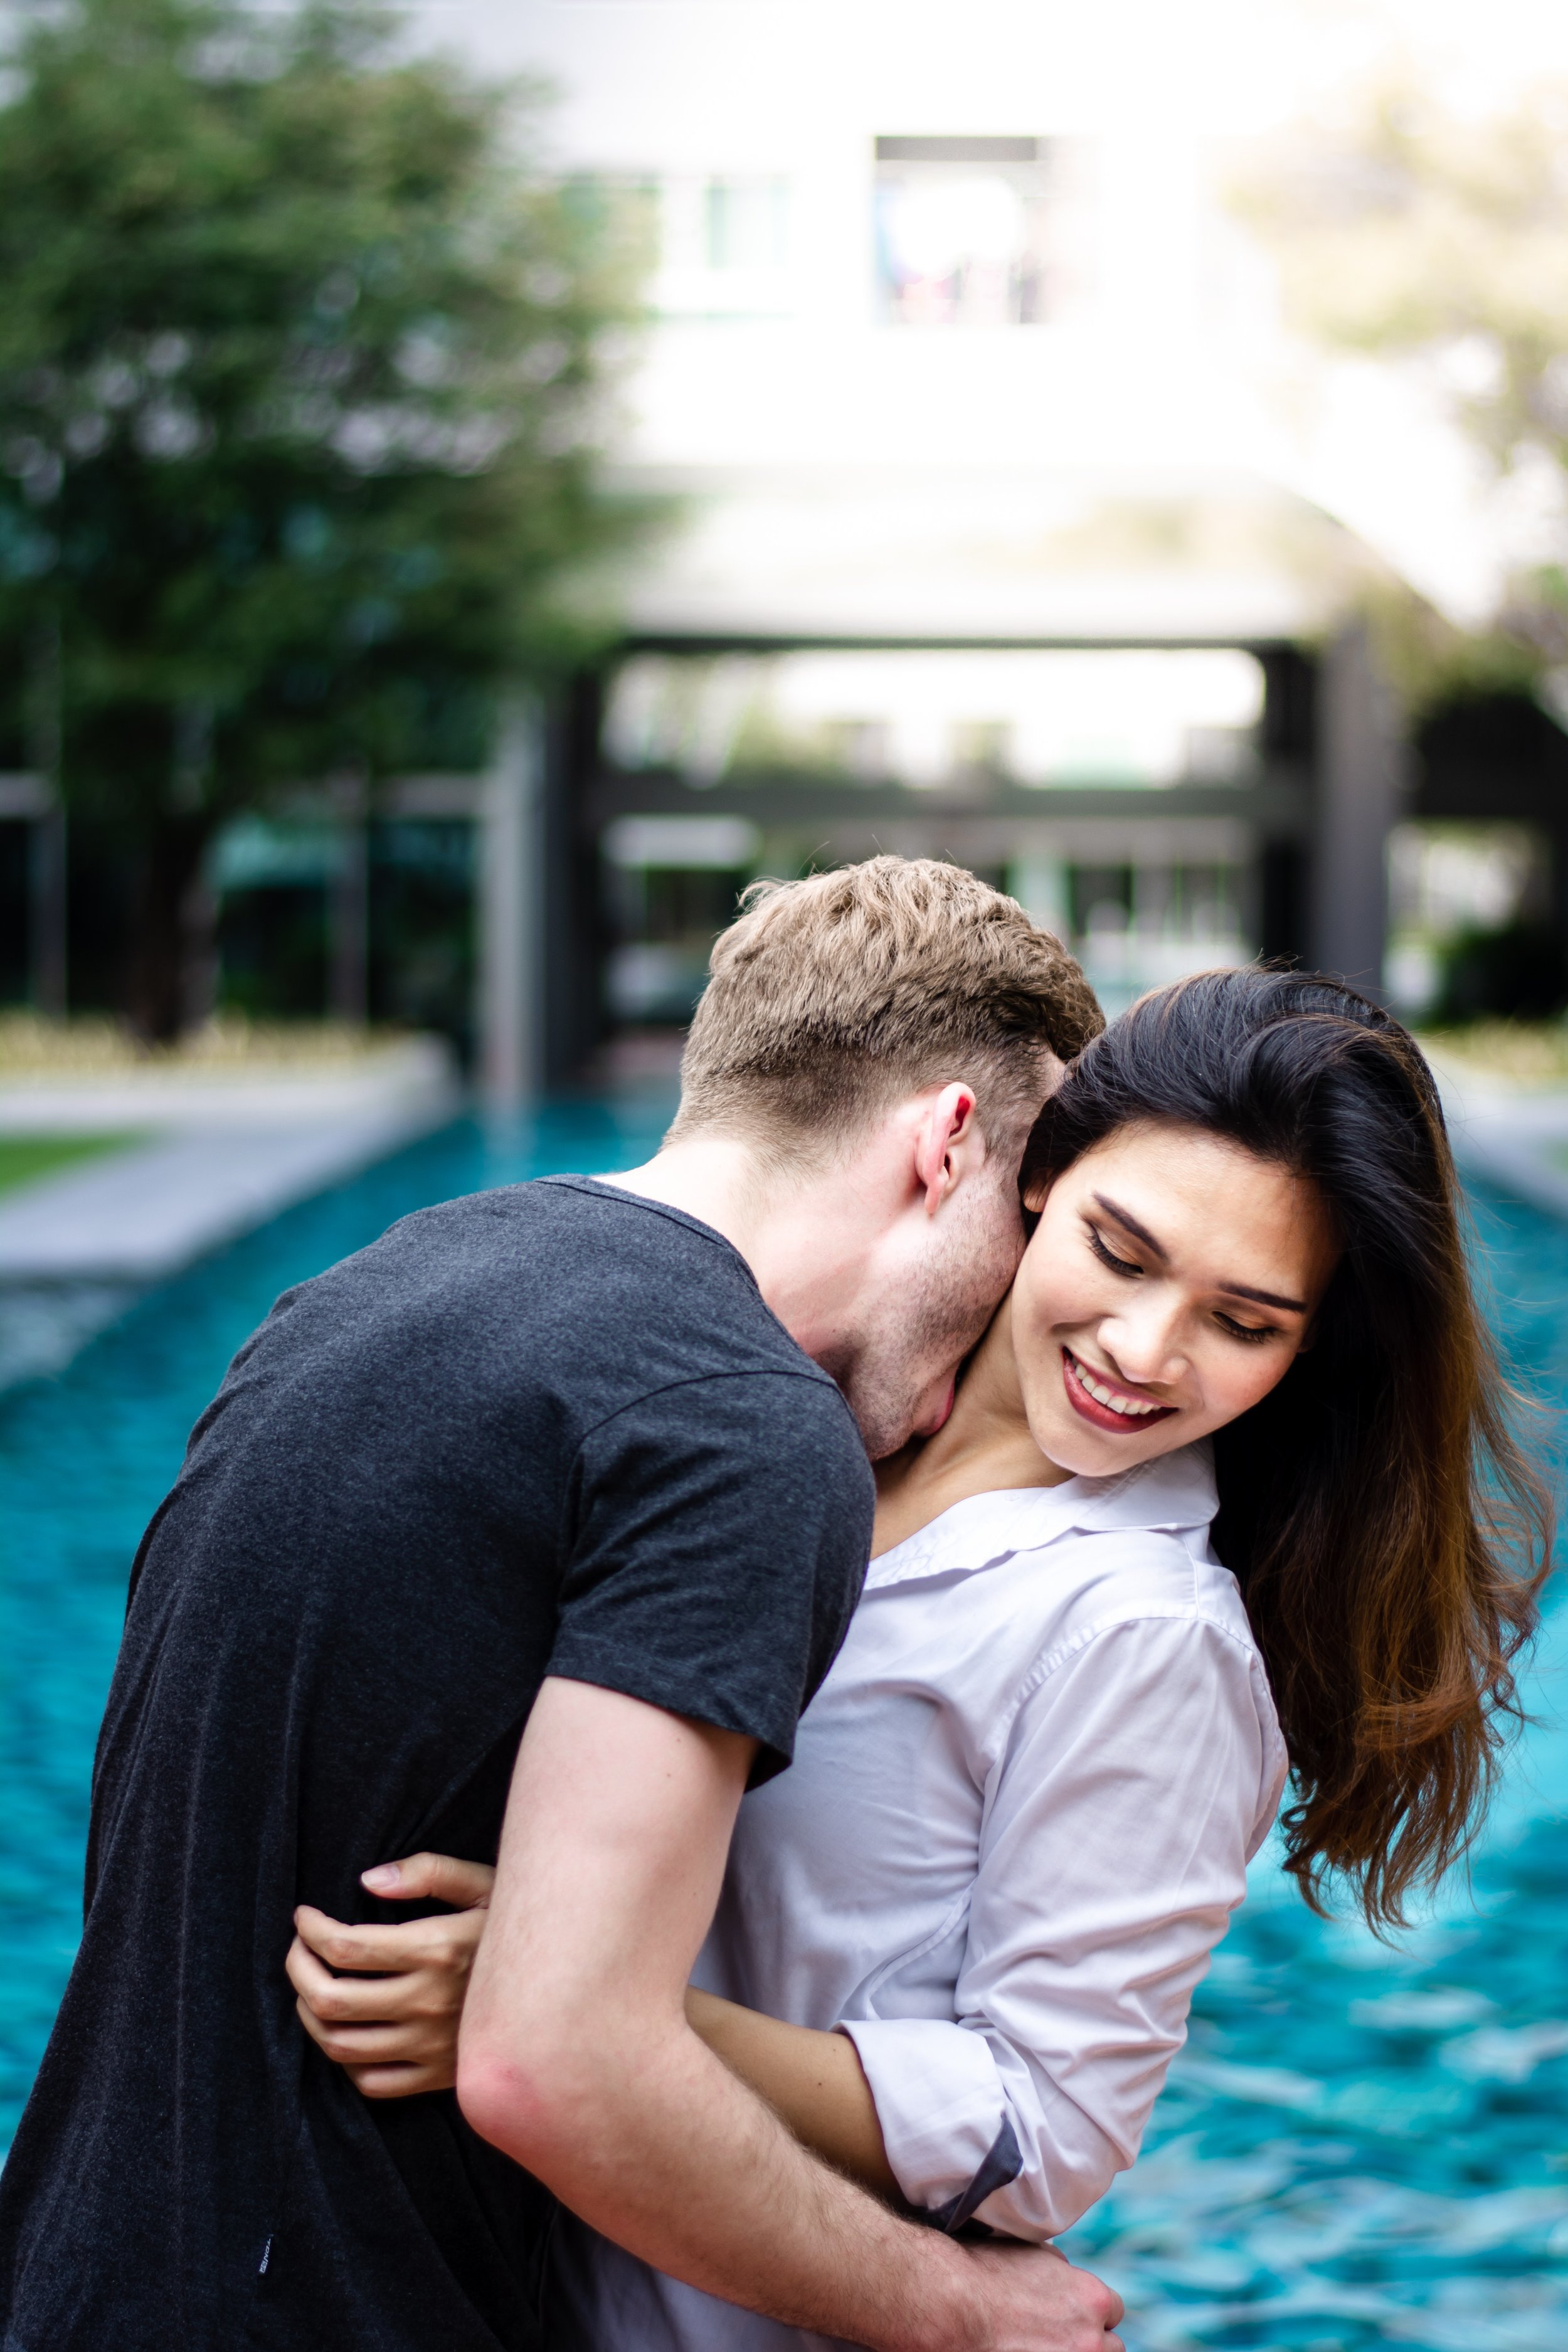 affection-blurred-background-couple-1232019.jpg